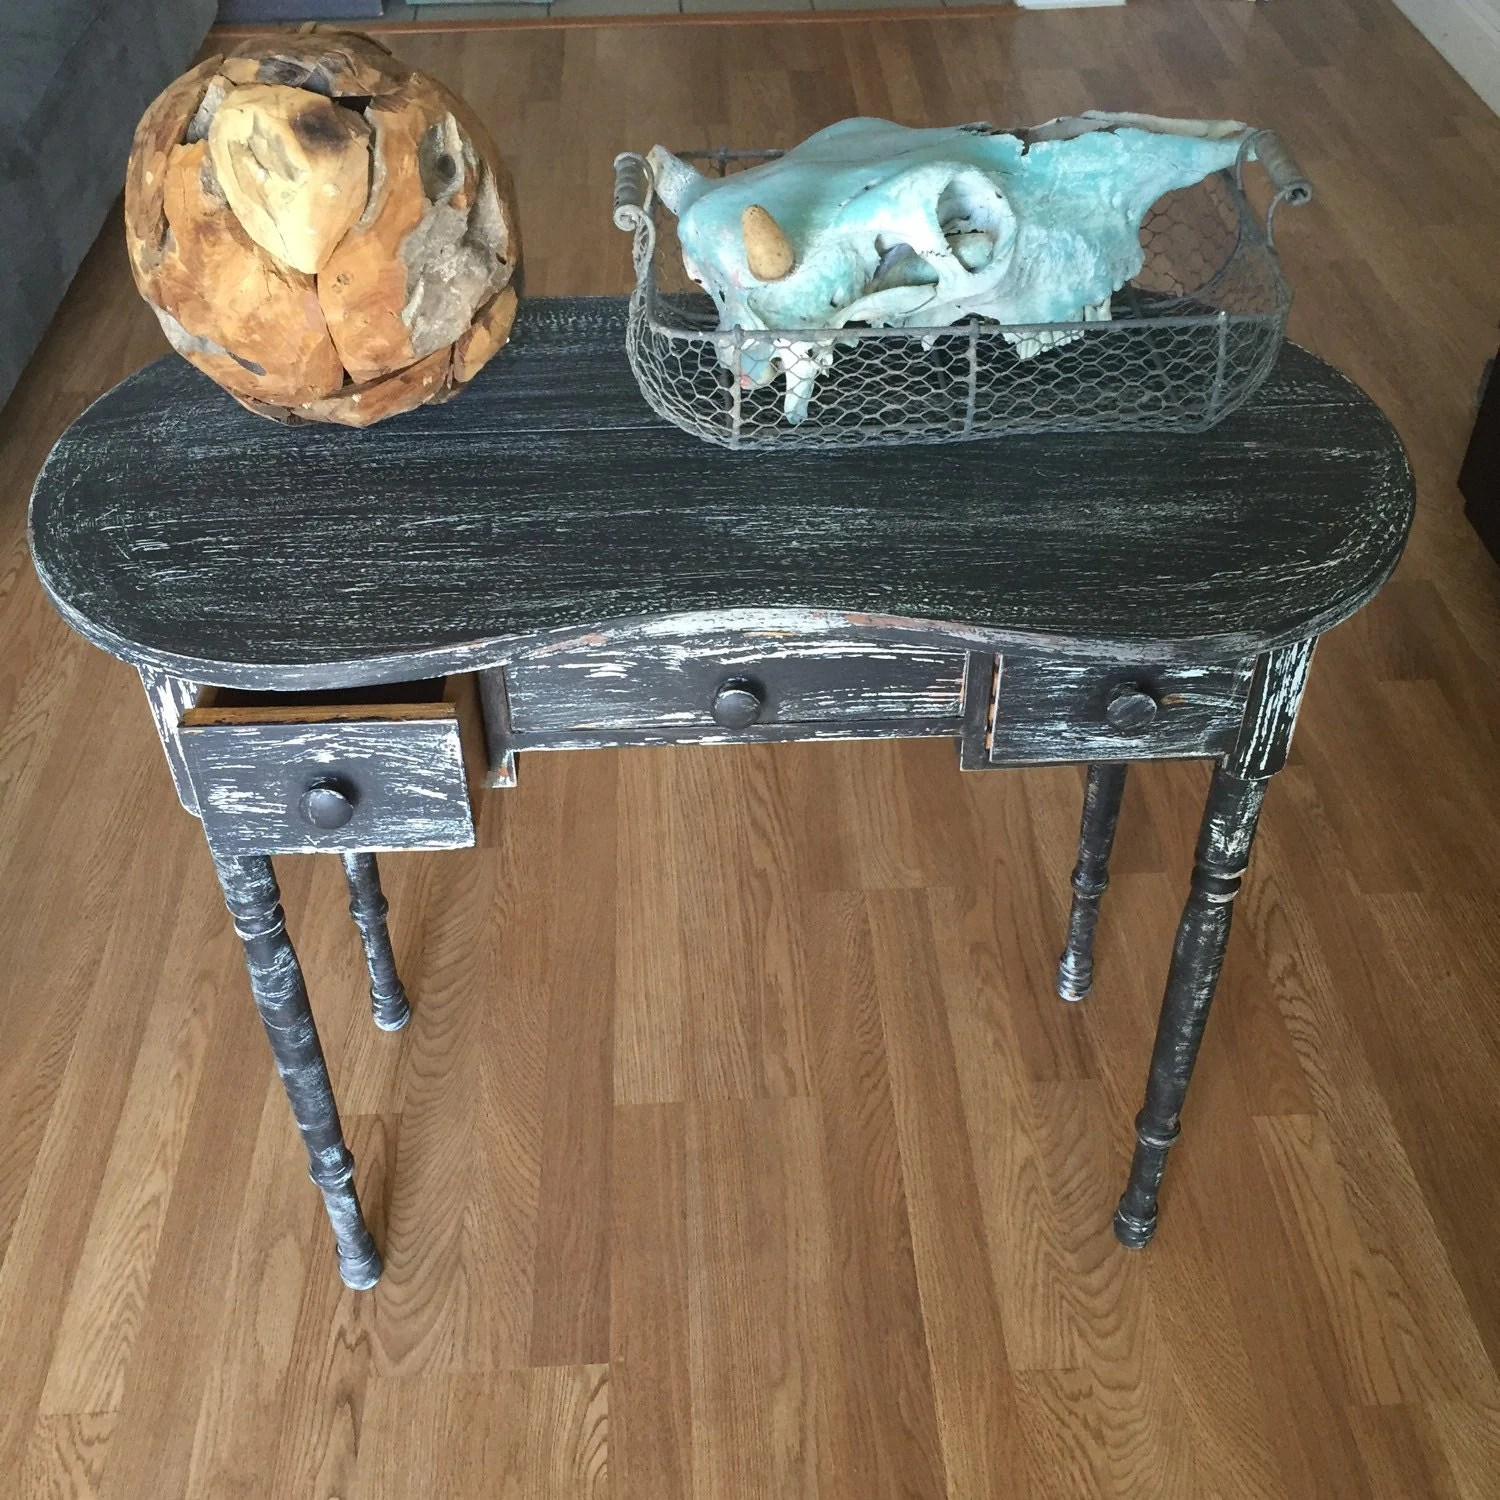 Sofa Table French Country Shabby Chic Desk Black White Shabby Chic Sofa Table